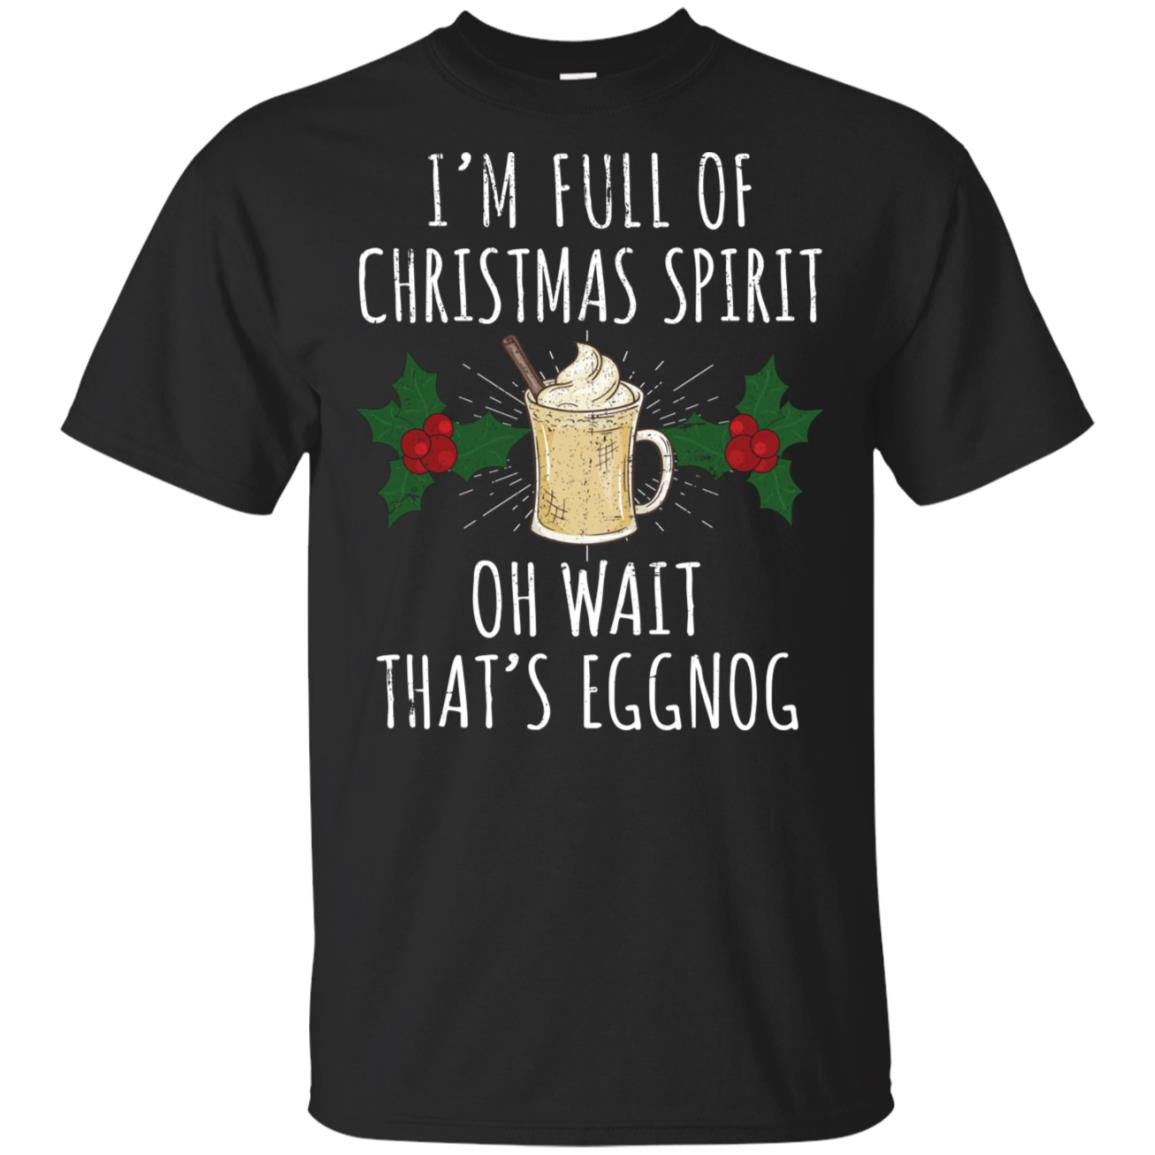 I'm Full of Christmas Spirit Oh Wait That's Eggnog - -4 Unisex Short Sleeve